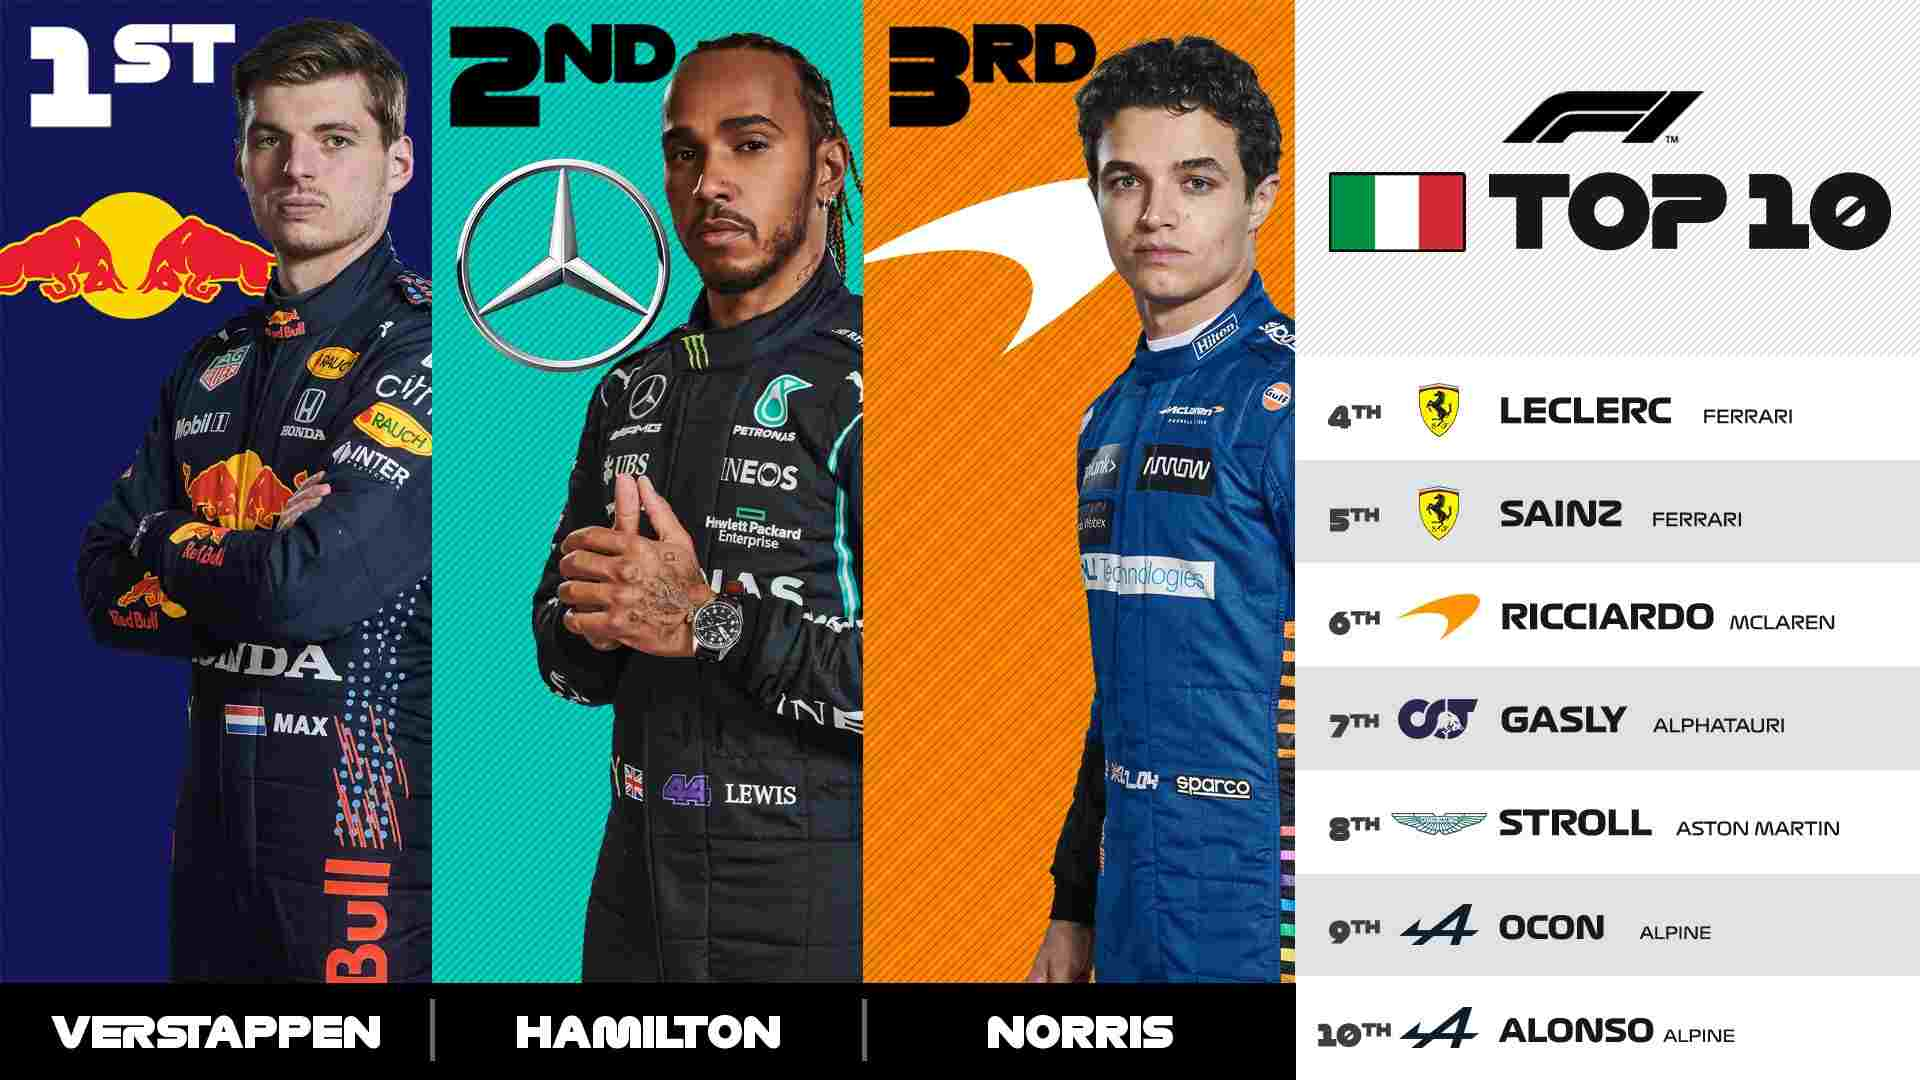 Lewis Hamilton of Mercedes AMG F1 finished at P2 behind Max Verstappen of Red Bull Racing at the Emilia Romagna Grand Prix on Sunday, April 18, 2021.